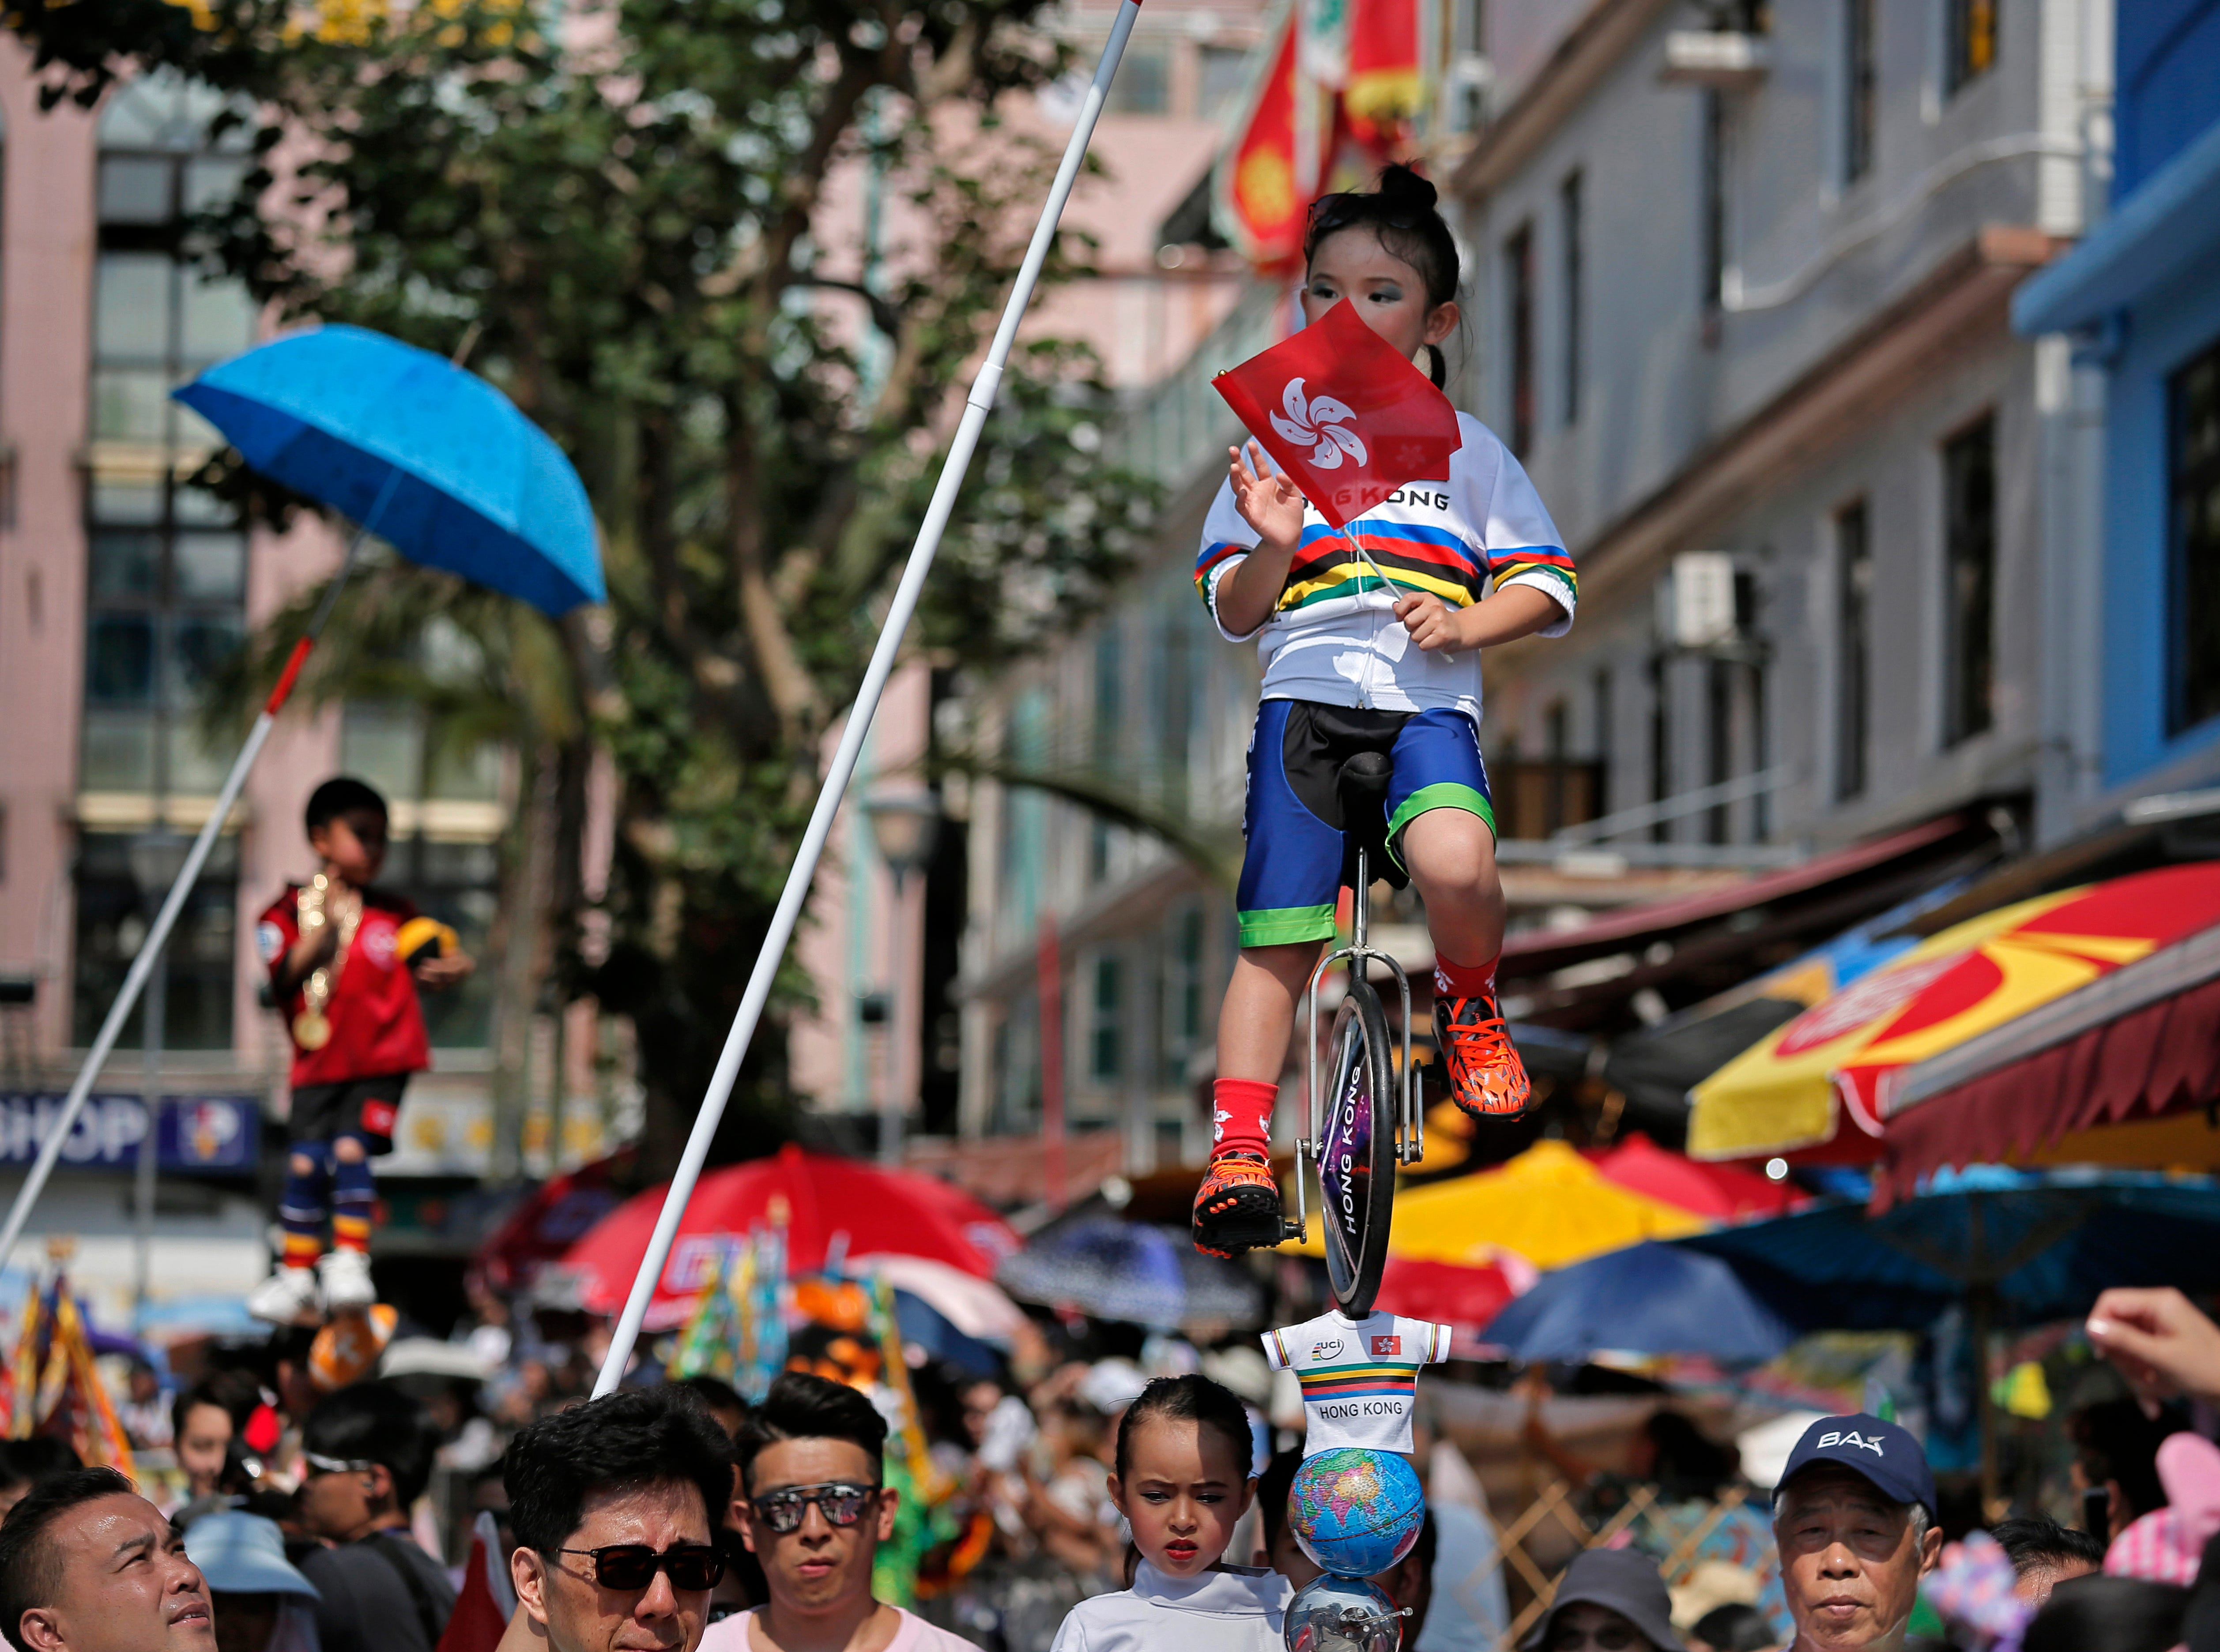 A child dressed in a traditional Chinese costume floats in the air, supported by a rig of hidden metal rods, during a parade on the outlying Cheung Chau island in Hong Kong to celebrate the Bun Festival Sunday, May 12, 2019.  Thousands of local residents and tourists flocked to an outlying island in Hong Kong to celebrate a local bun festival on Sunday. The festival features a parade with children dressed as deities floated on poles.